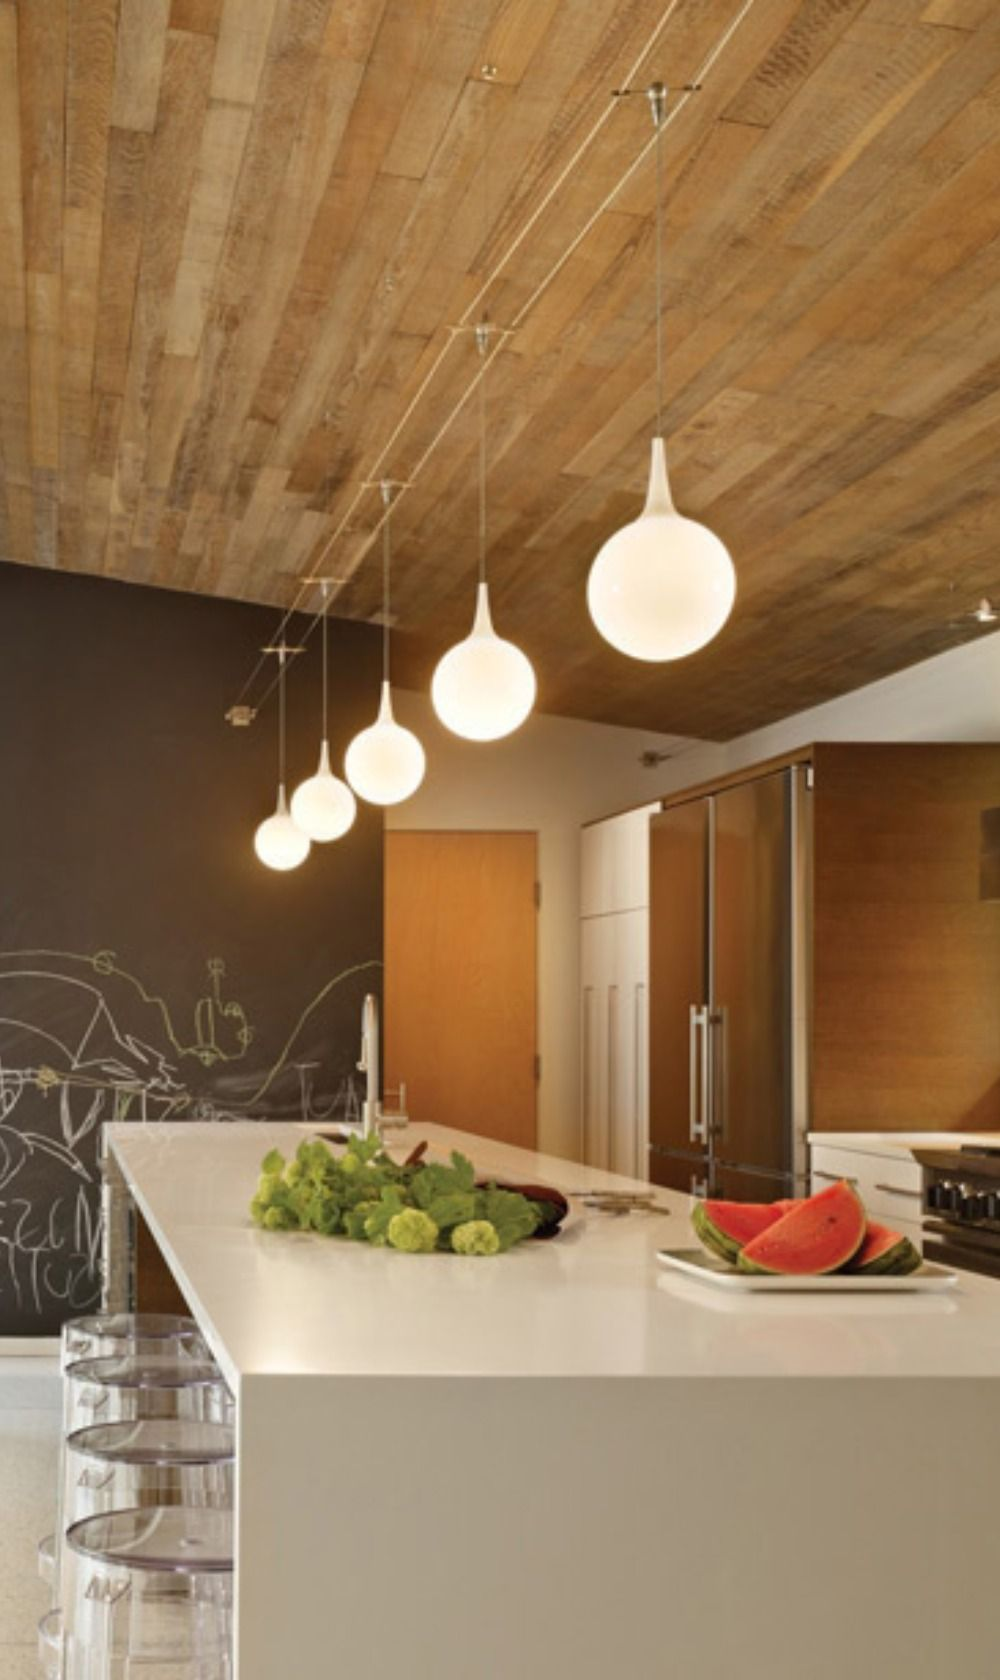 Pele Monopoint Pendant By Tech Lighting 700mppelws In 2020 Wooden Ceilings Contemporary Interior Design Modern Spaces